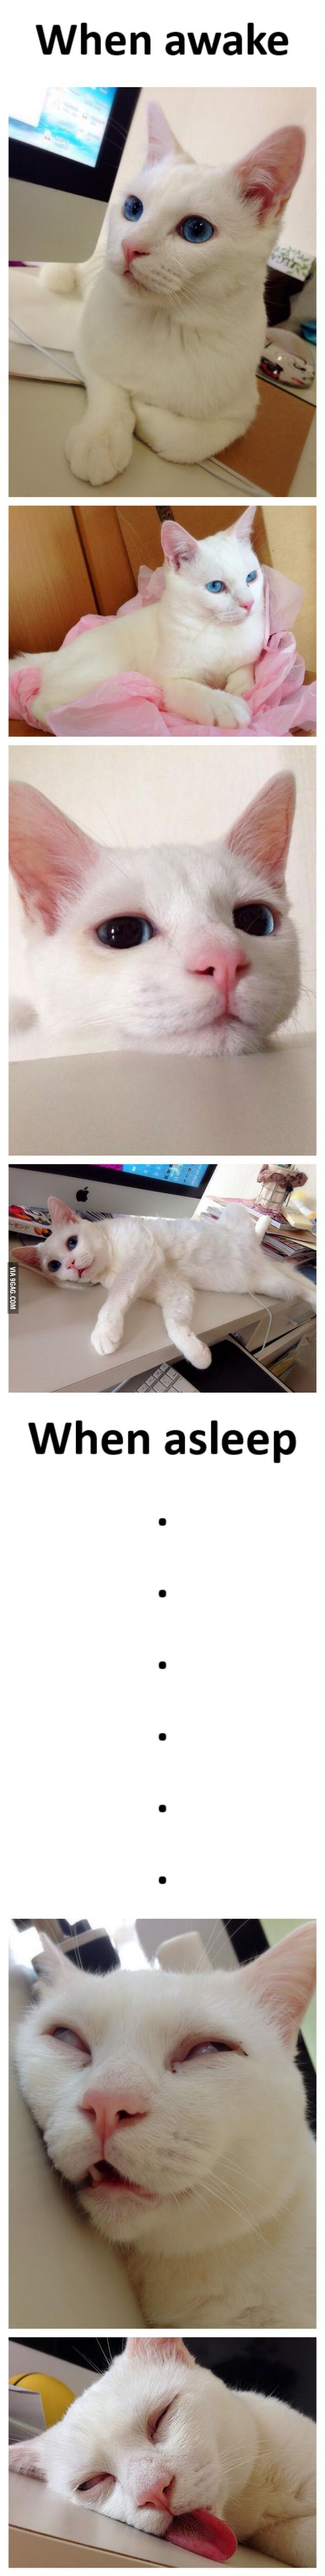 This is how a cat sleeps